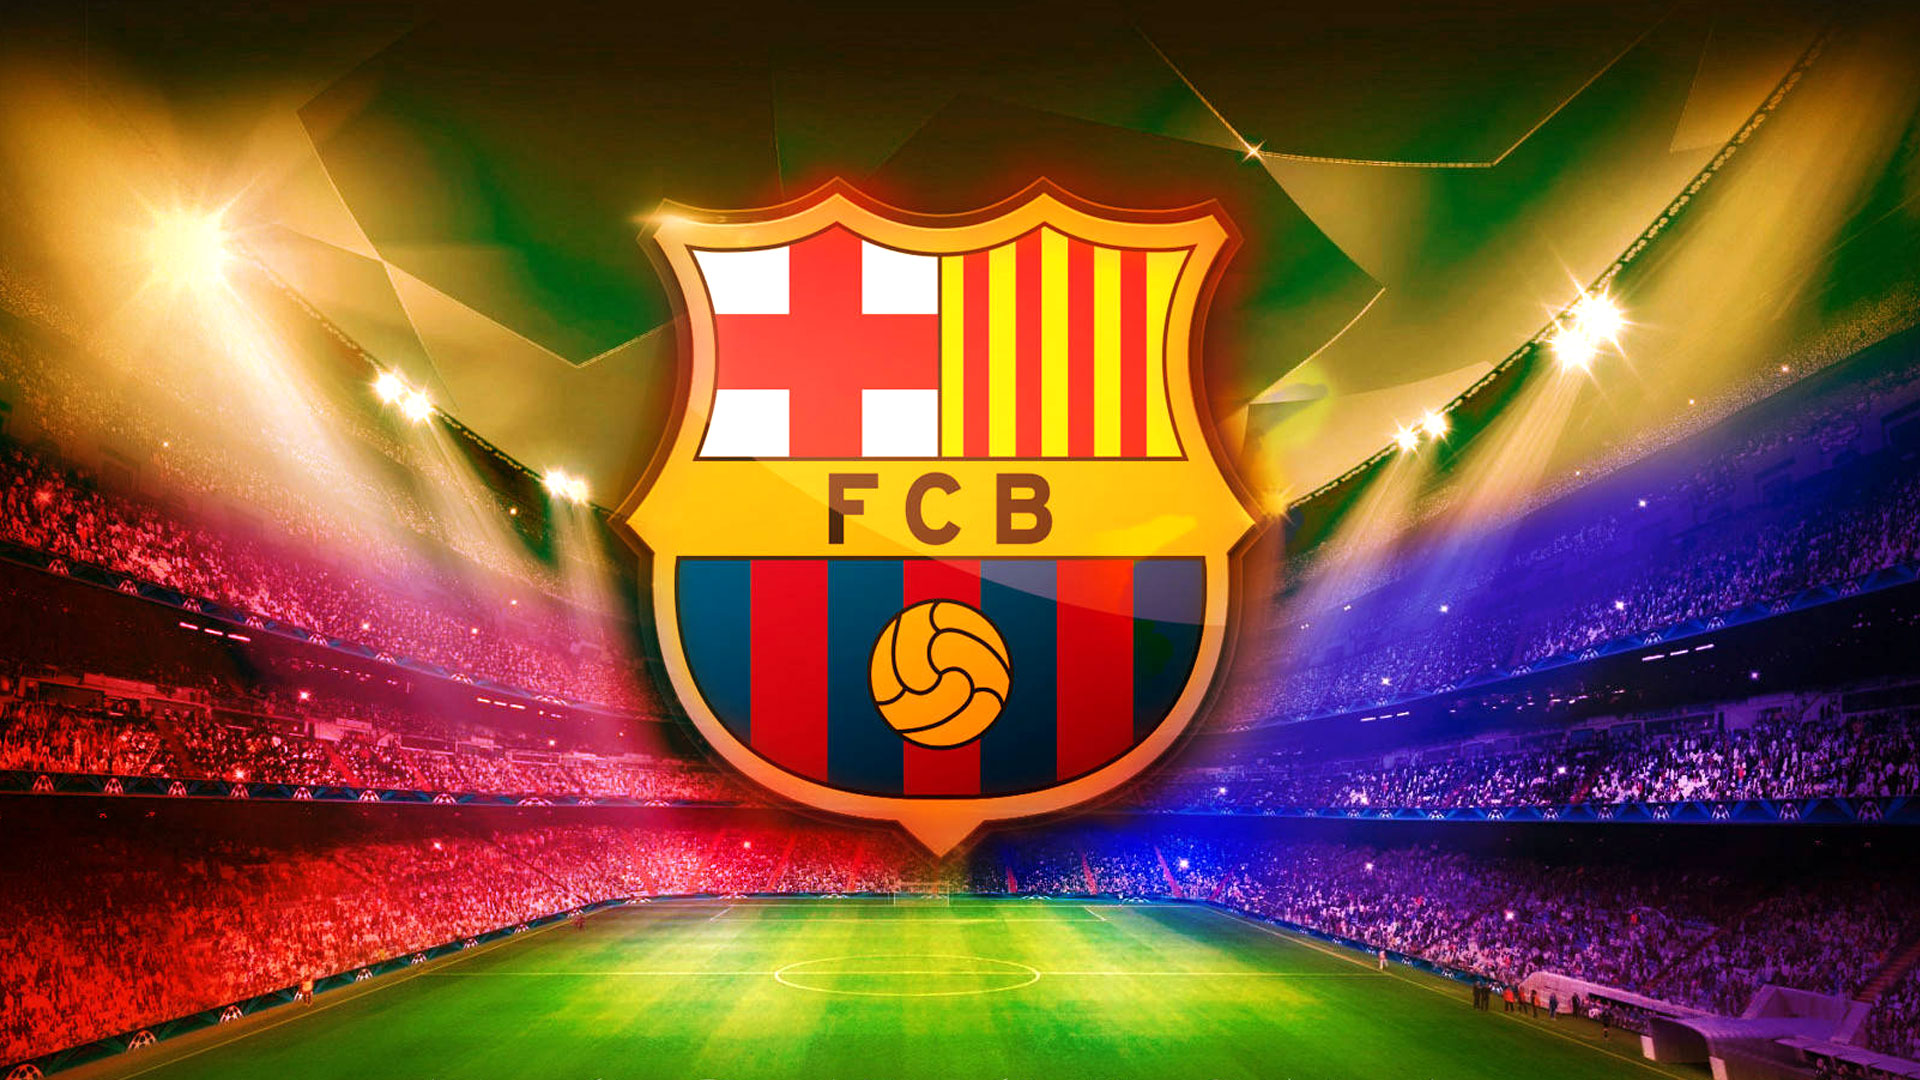 steam workshop fc barcelona logo with anthem steam workshop fc barcelona logo with